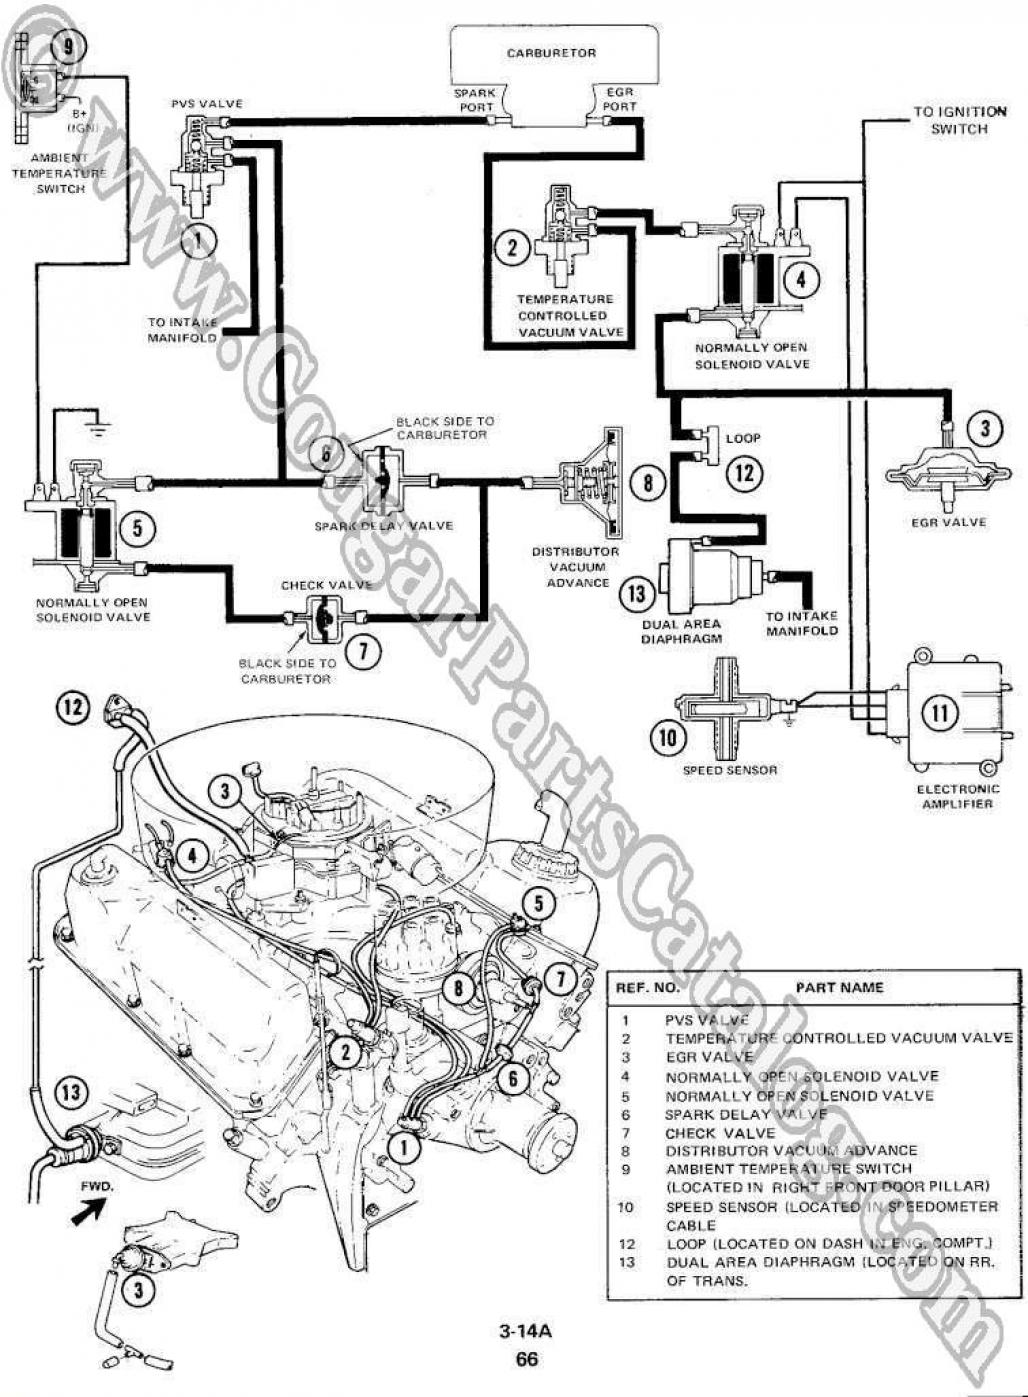 1965 mustang engine 289 diagram